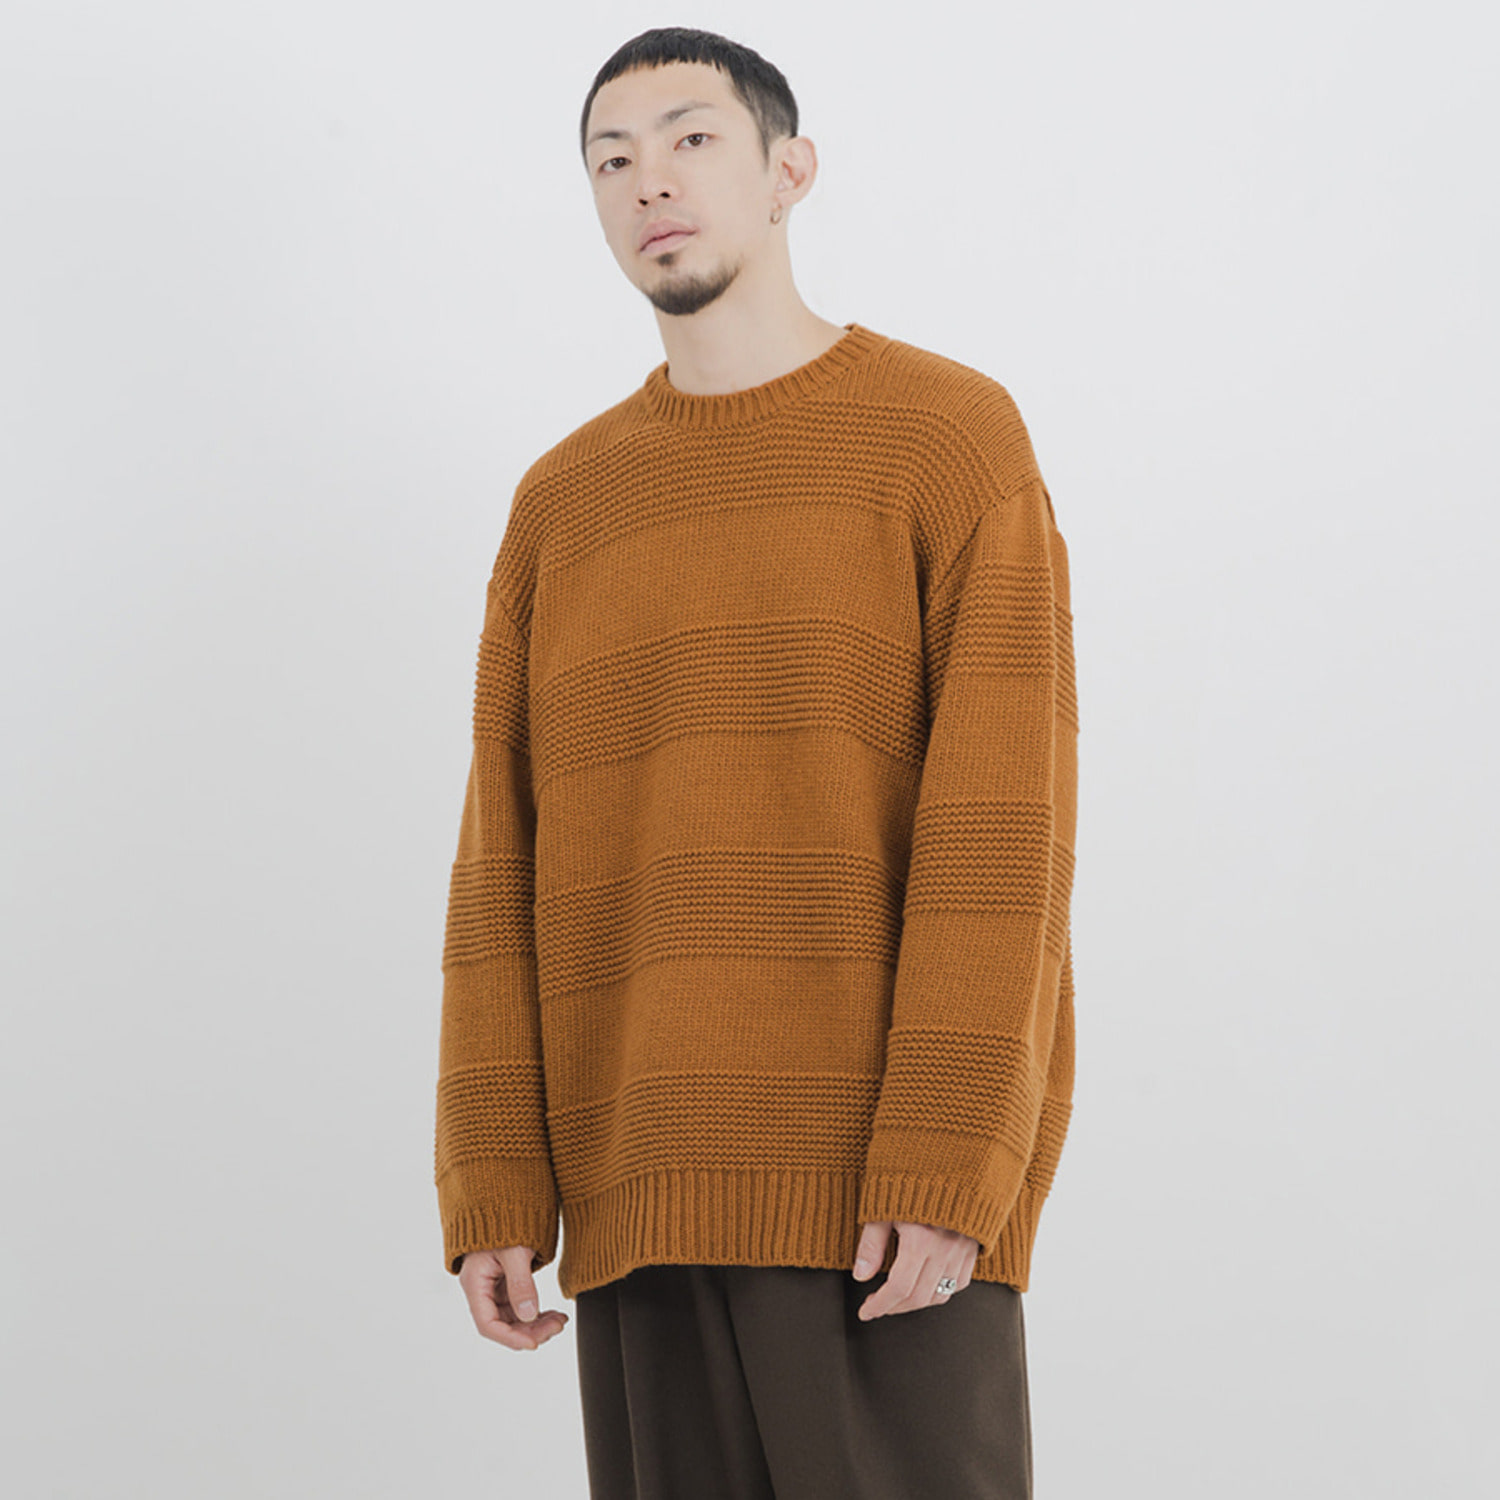 Crewneck Sweater (Pecan)